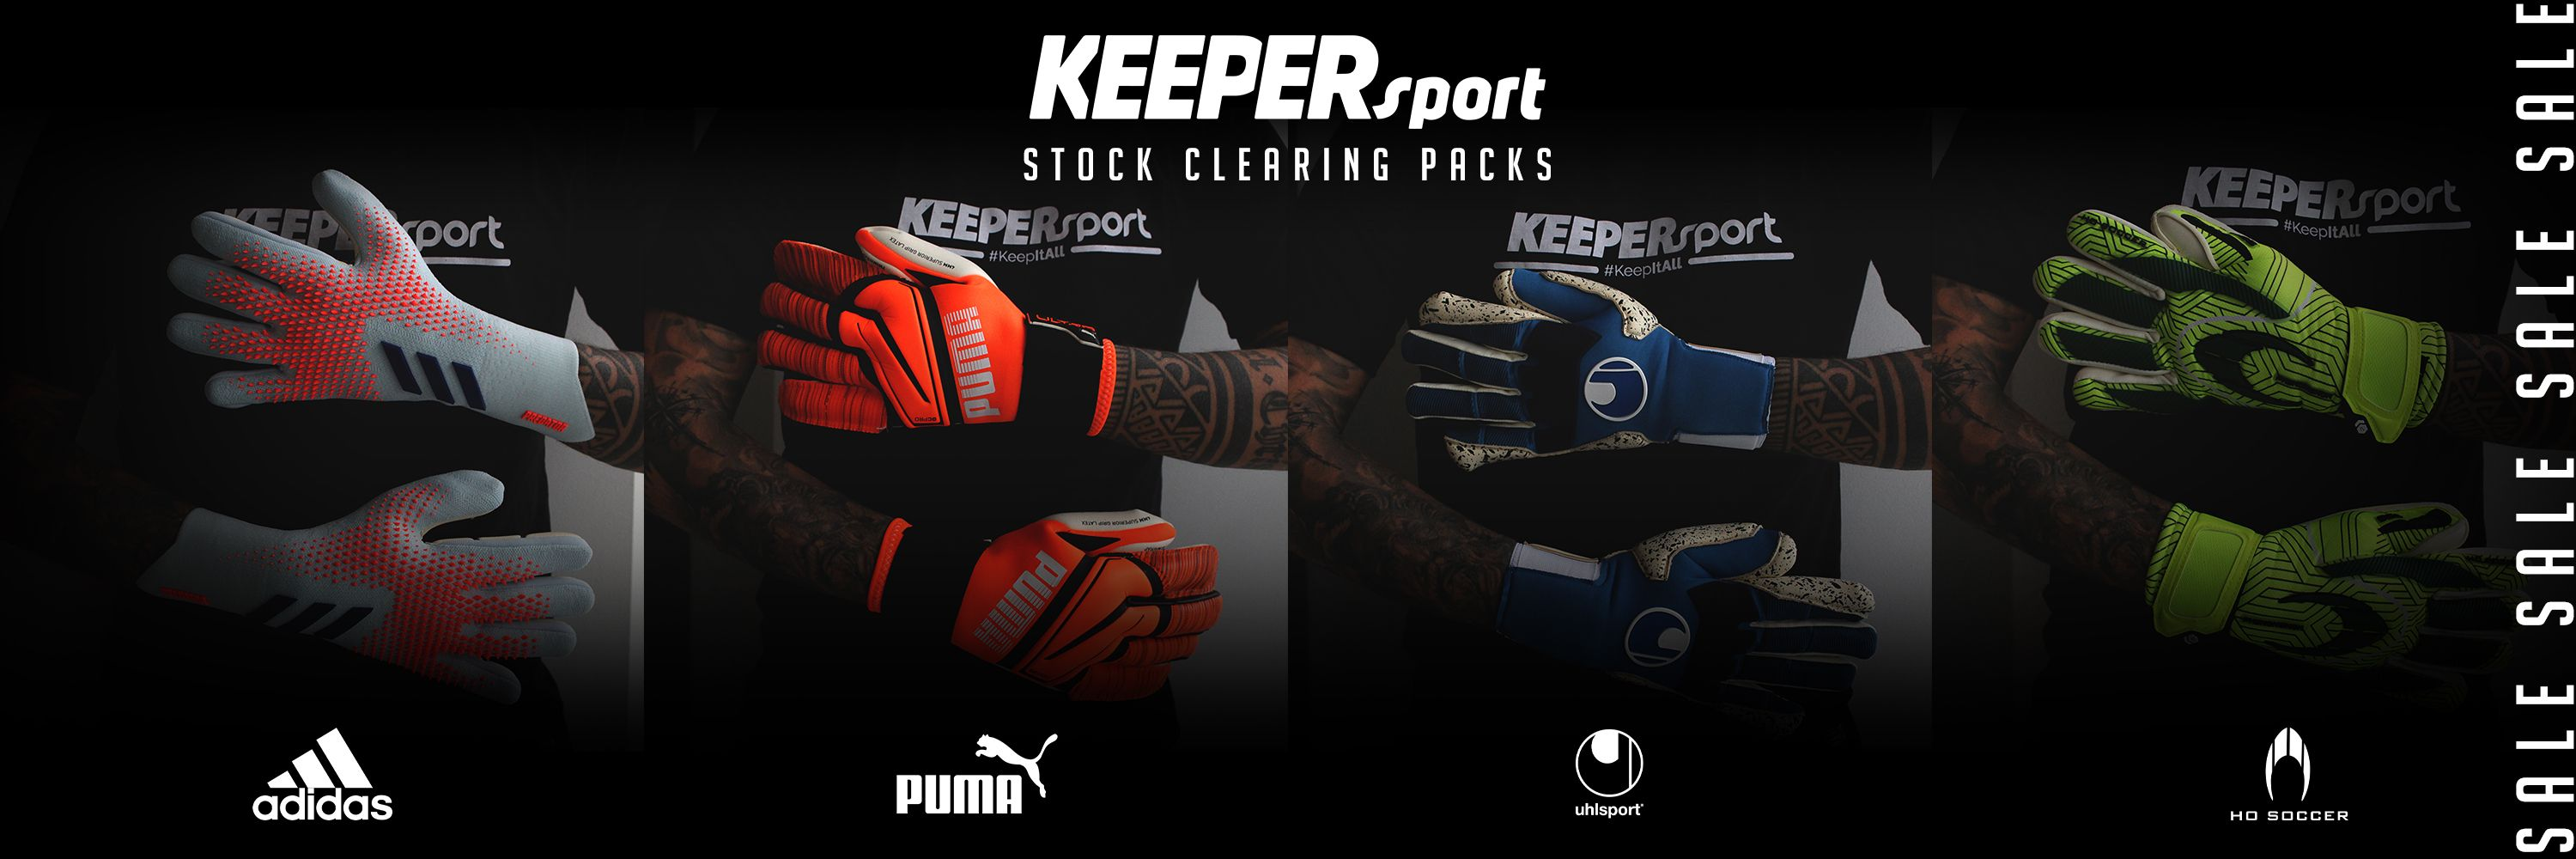 Stock Clearing at KEEPERsport